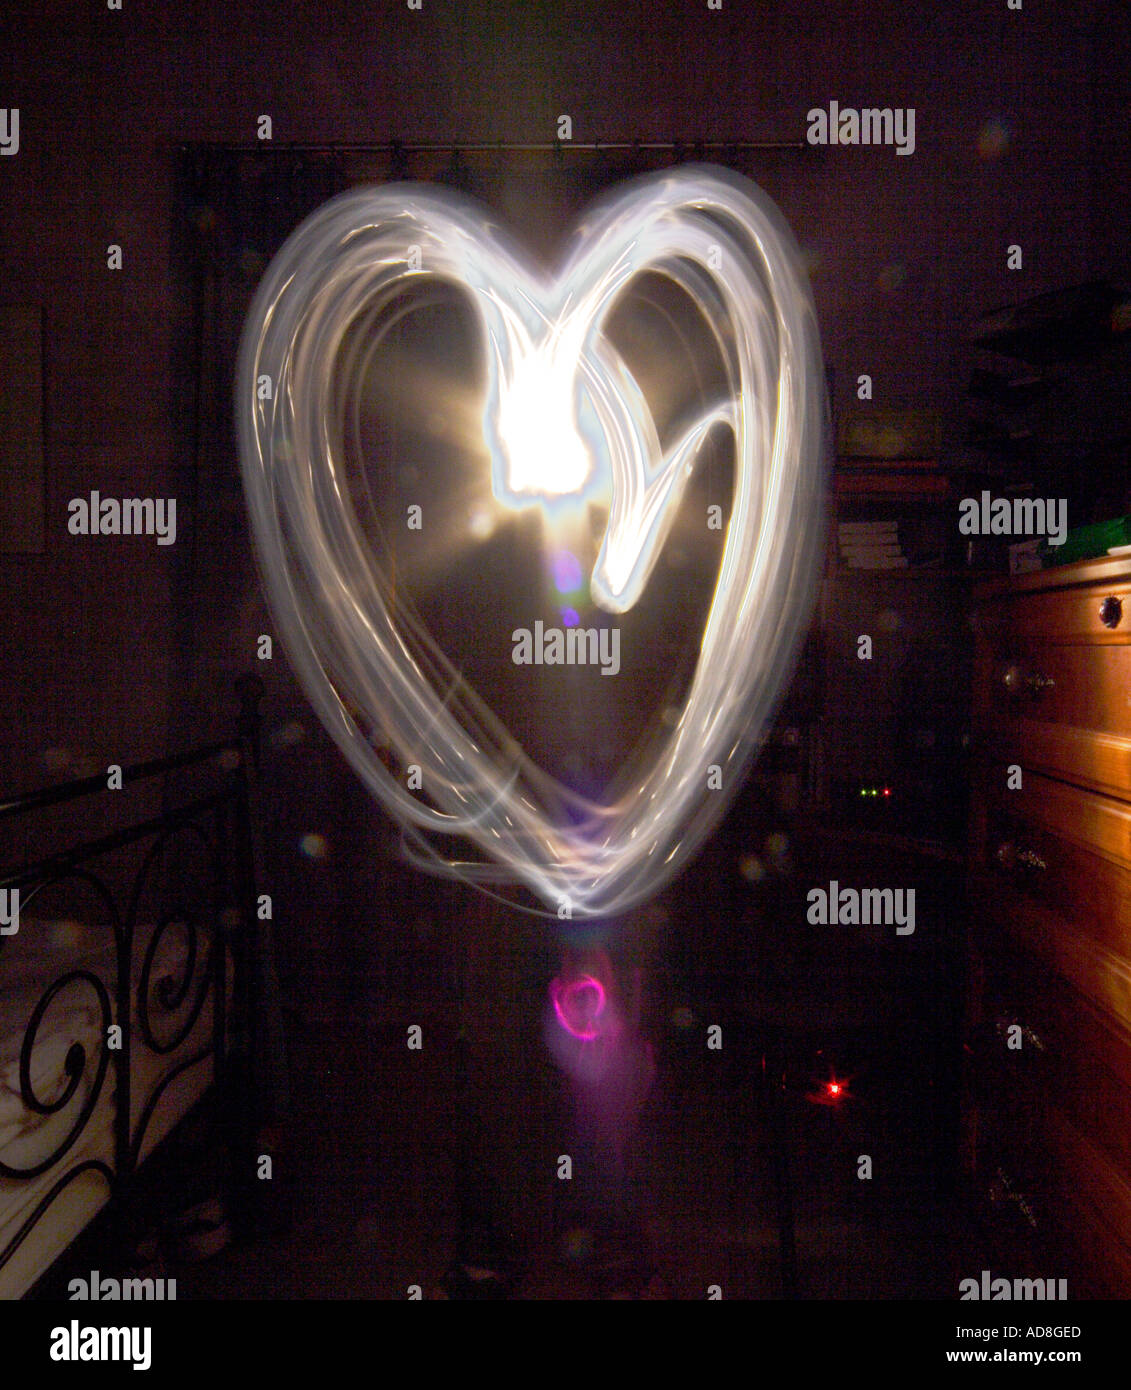 Painting with light heart shape - Stock Image